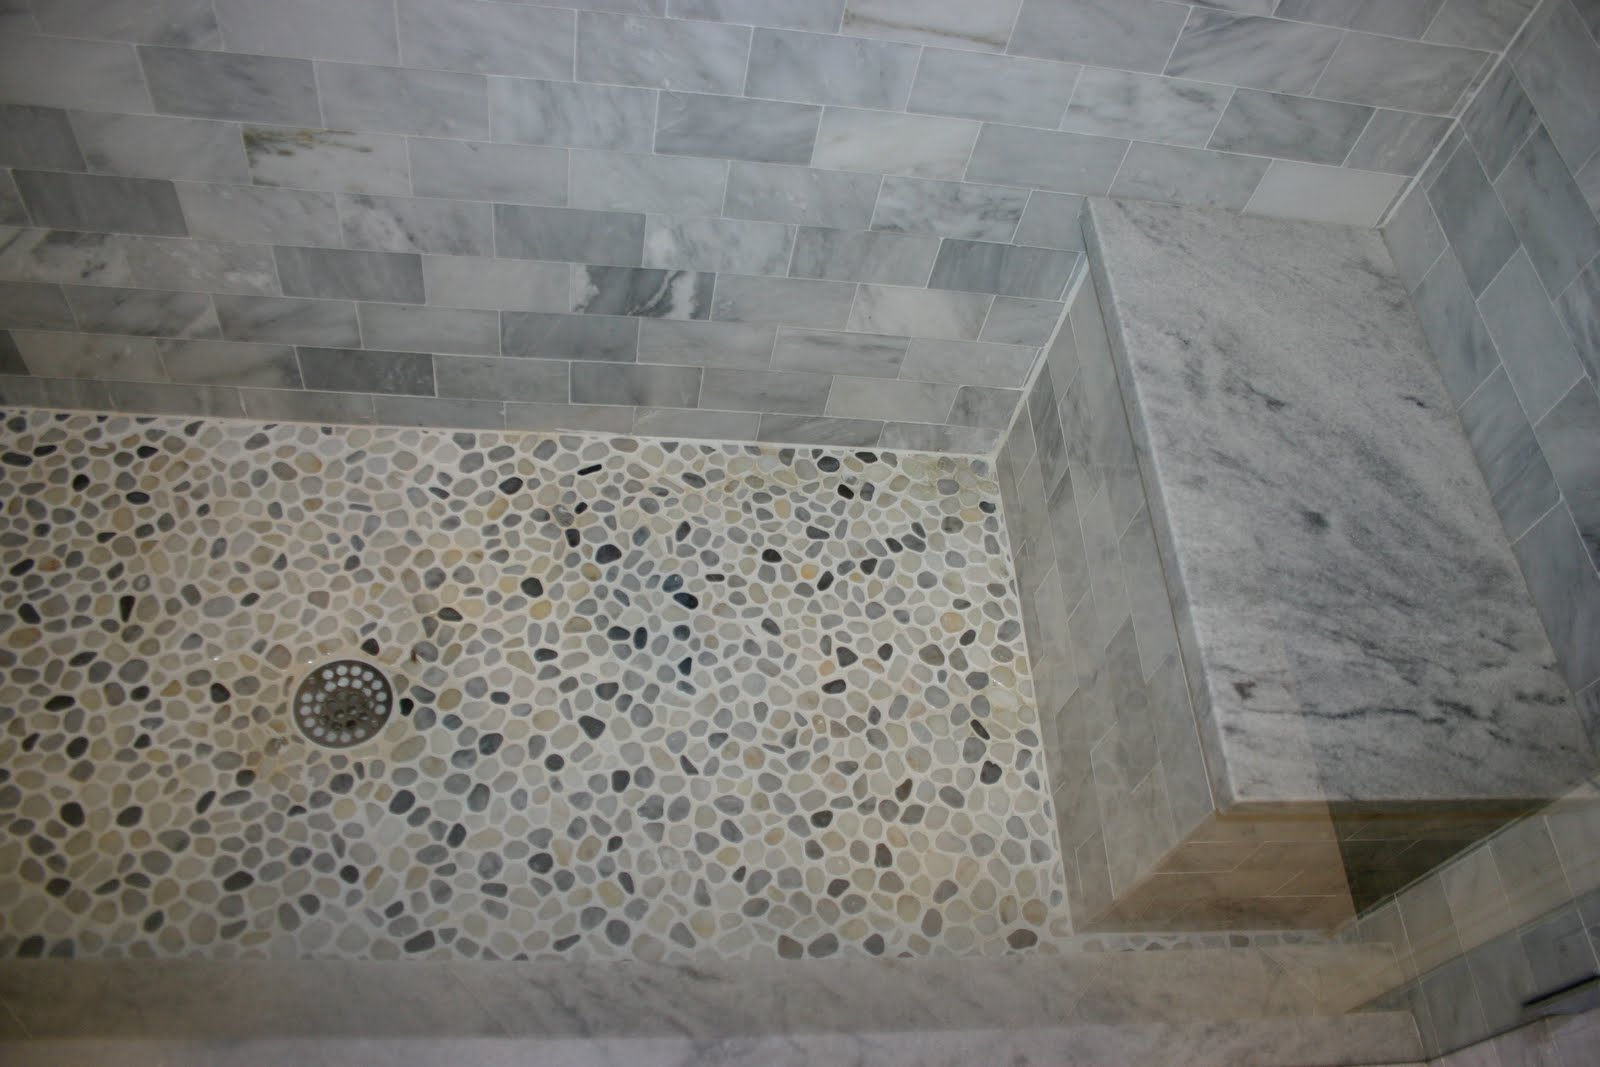 Cool Bathroom Remodel Ideasbathroom Designs Bathroom Design Pebble Tiles Home Decorating